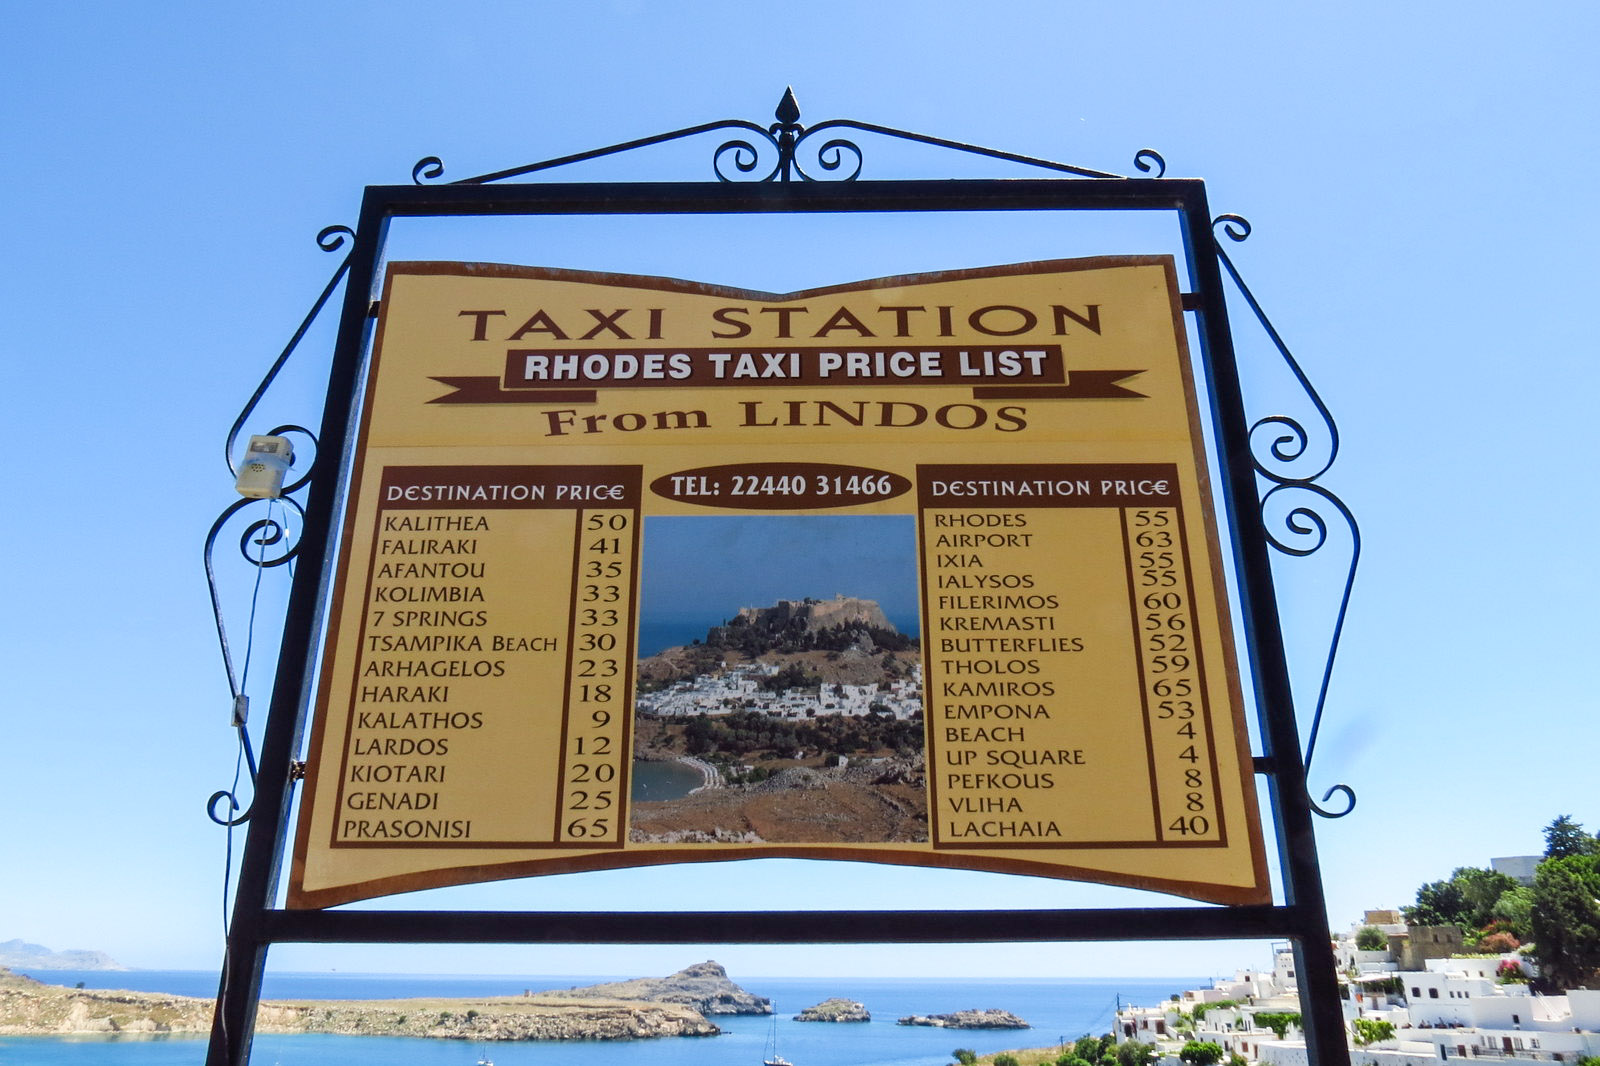 lindos-taxi-prices